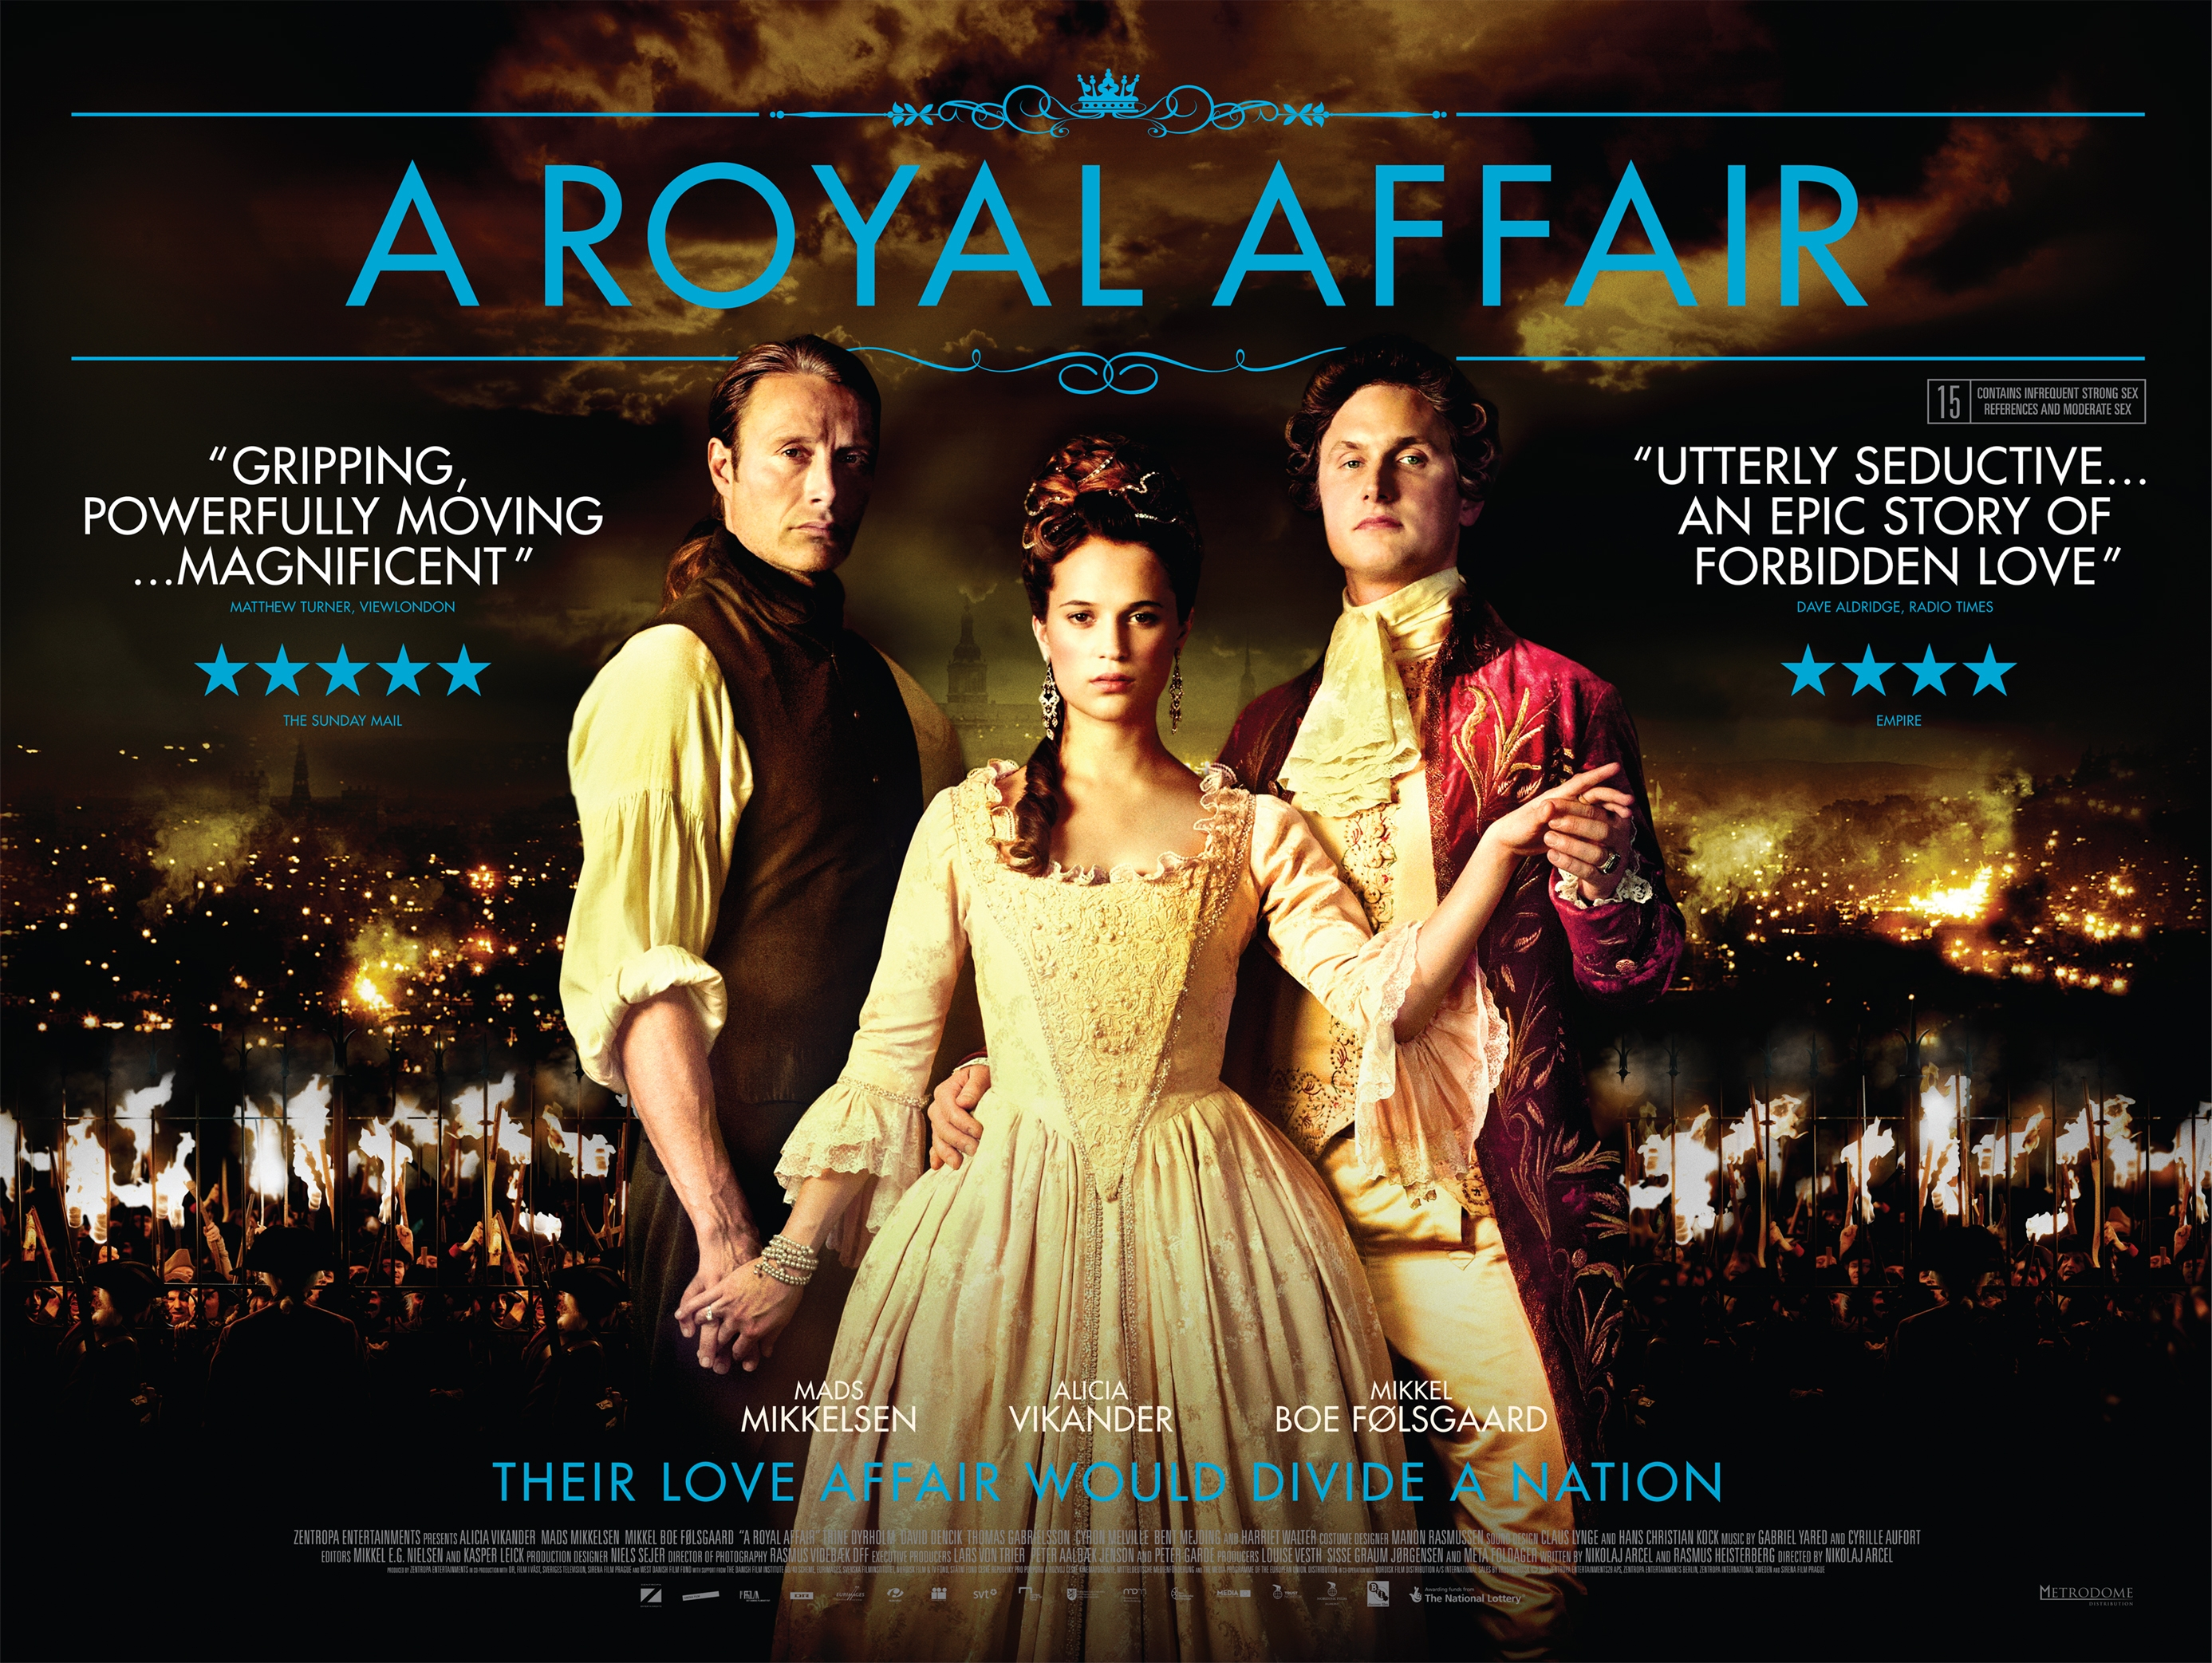 A Royal Affair is one of the more recent Mads Mikkelsen movies.